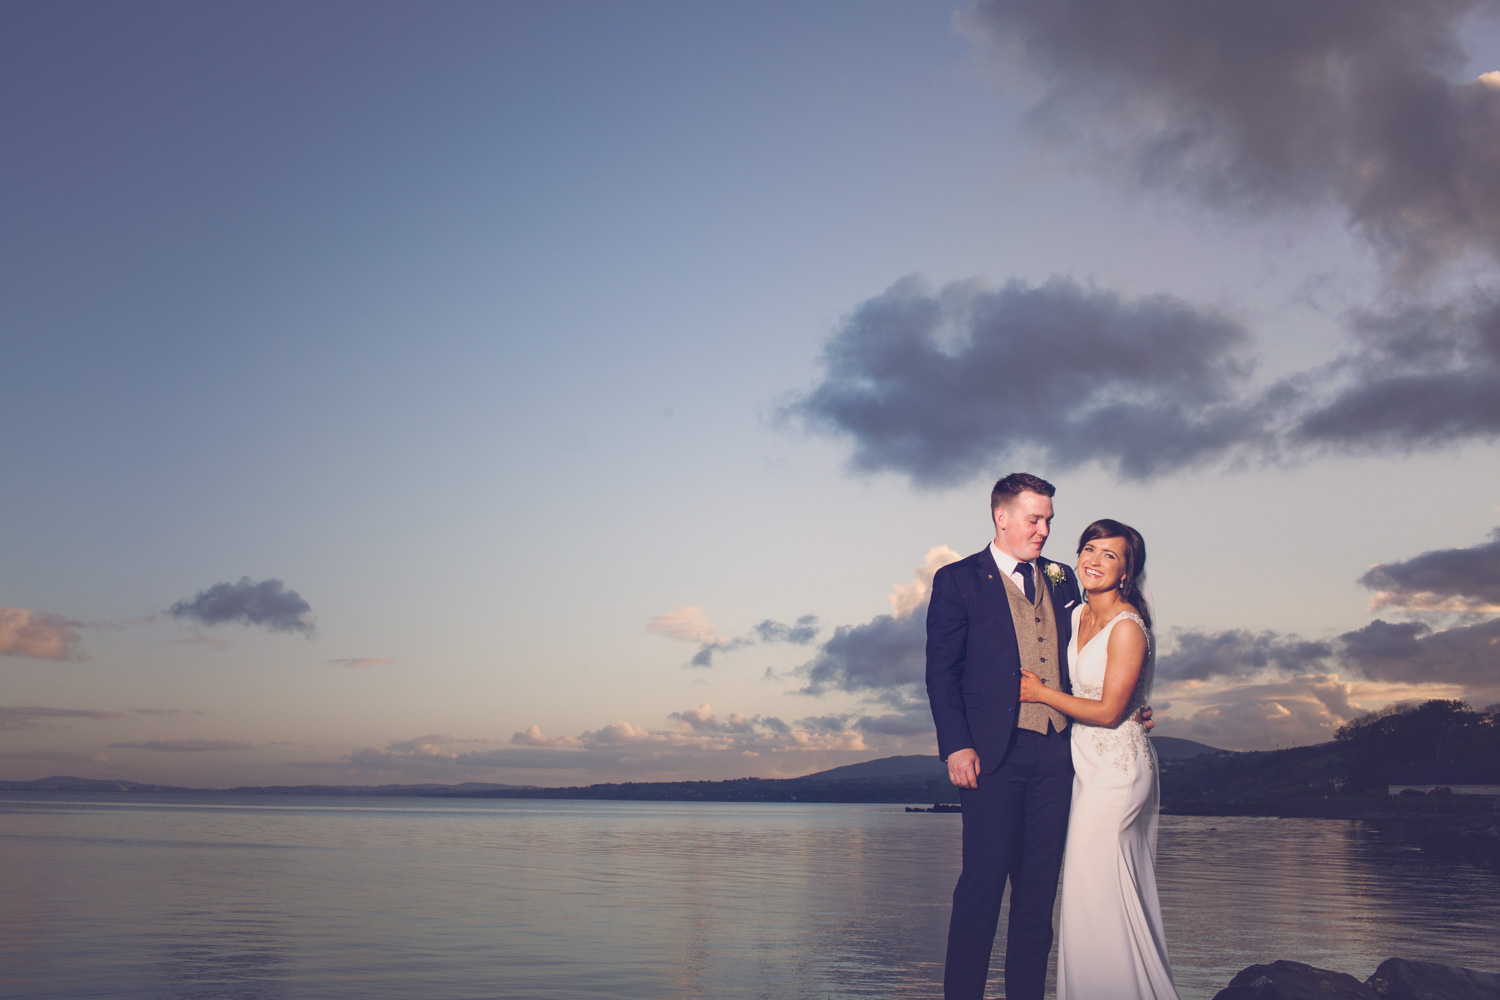 Mark_Barnes_Northern_Ireland_wedding_photographer_redcastle_hotel_Donegal_Wedding_photography_Donegal_wedding_photographer-47.jpg